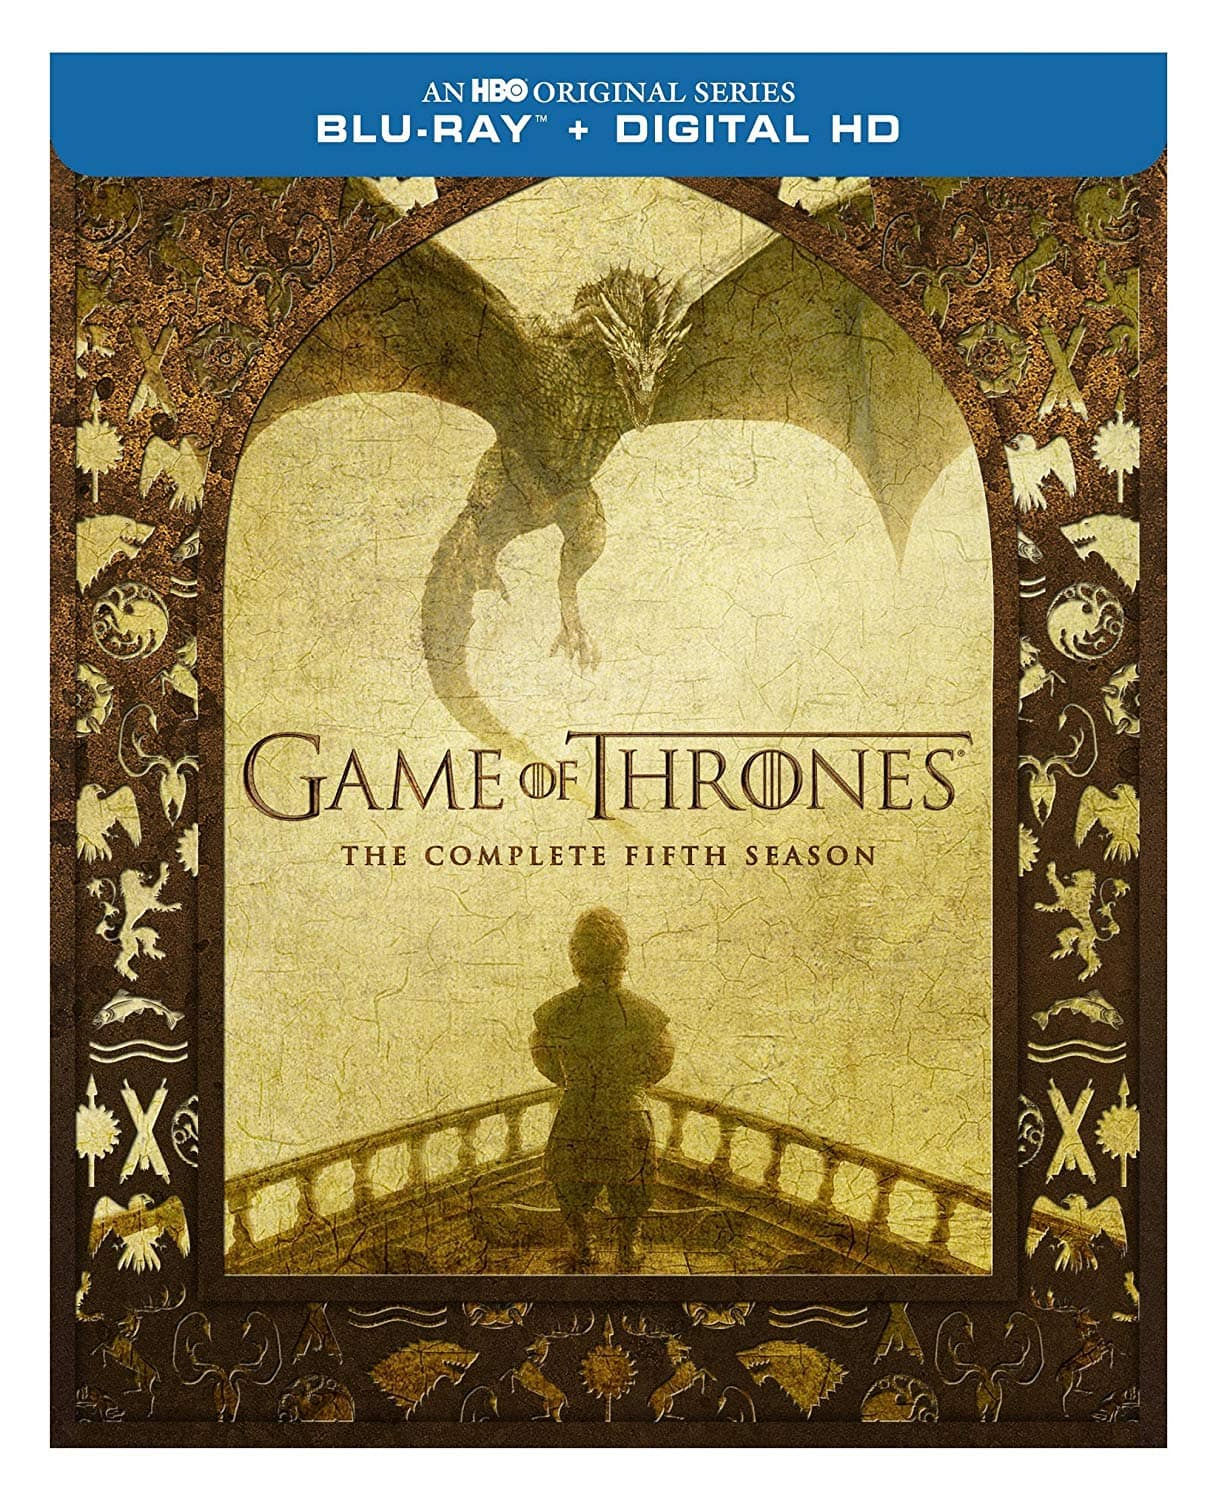 Game of Thrones: Complete 2nd, 4th, 5th or 7th Season (Blu-ray+Digital) $10 each + Free Store Pickup